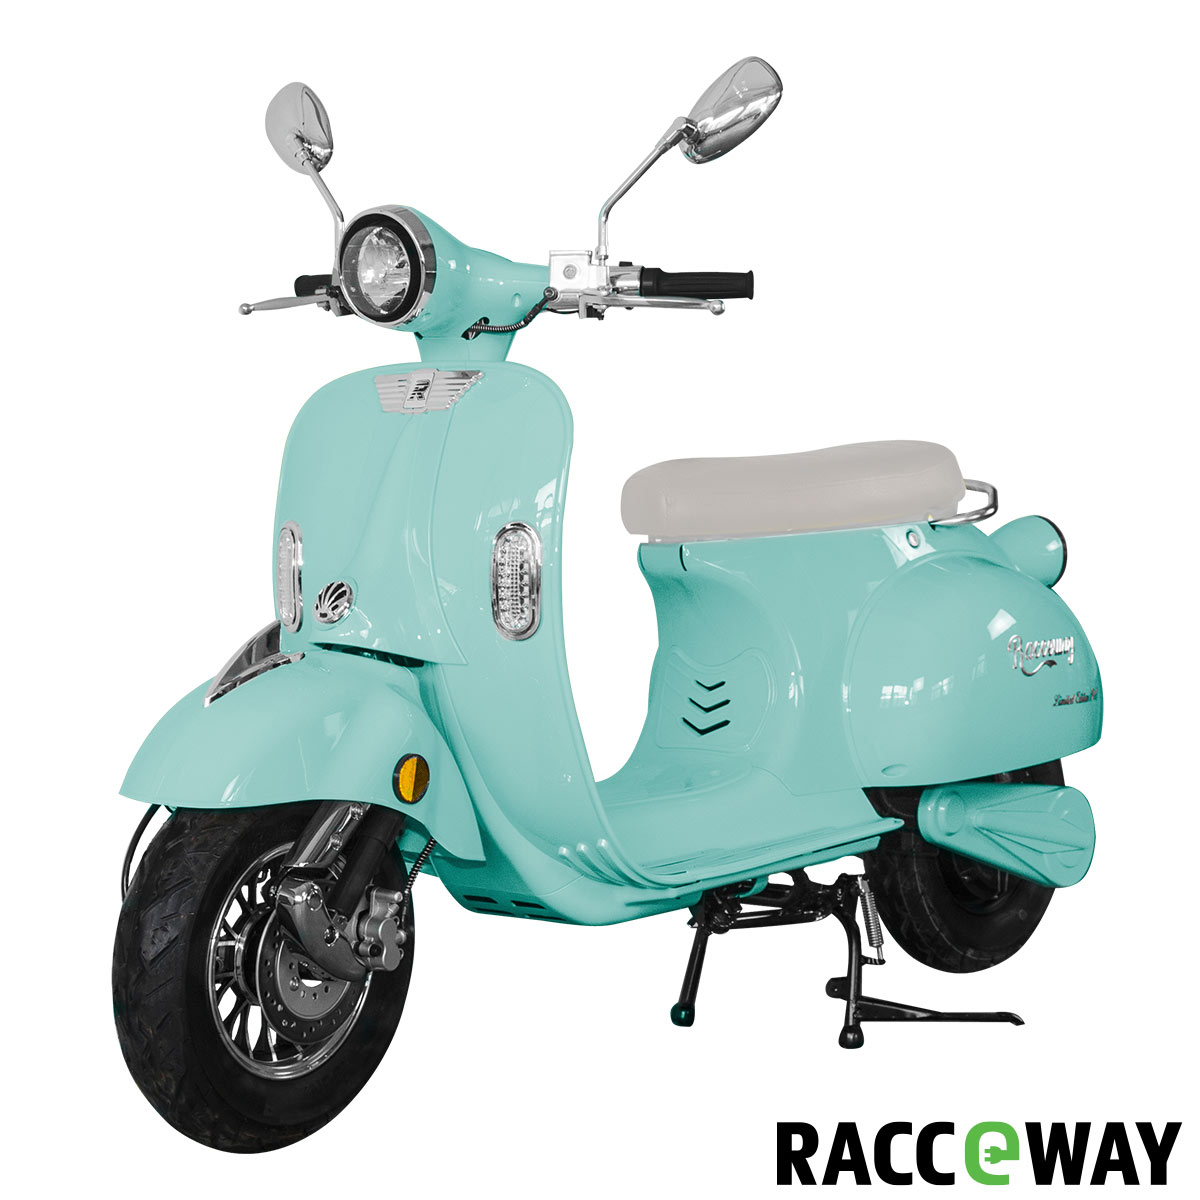 https://www.motoe.sk/inshop/catalogue/products/pictures/motoe-7-06_a2.jpg?timestamp=20210621110317